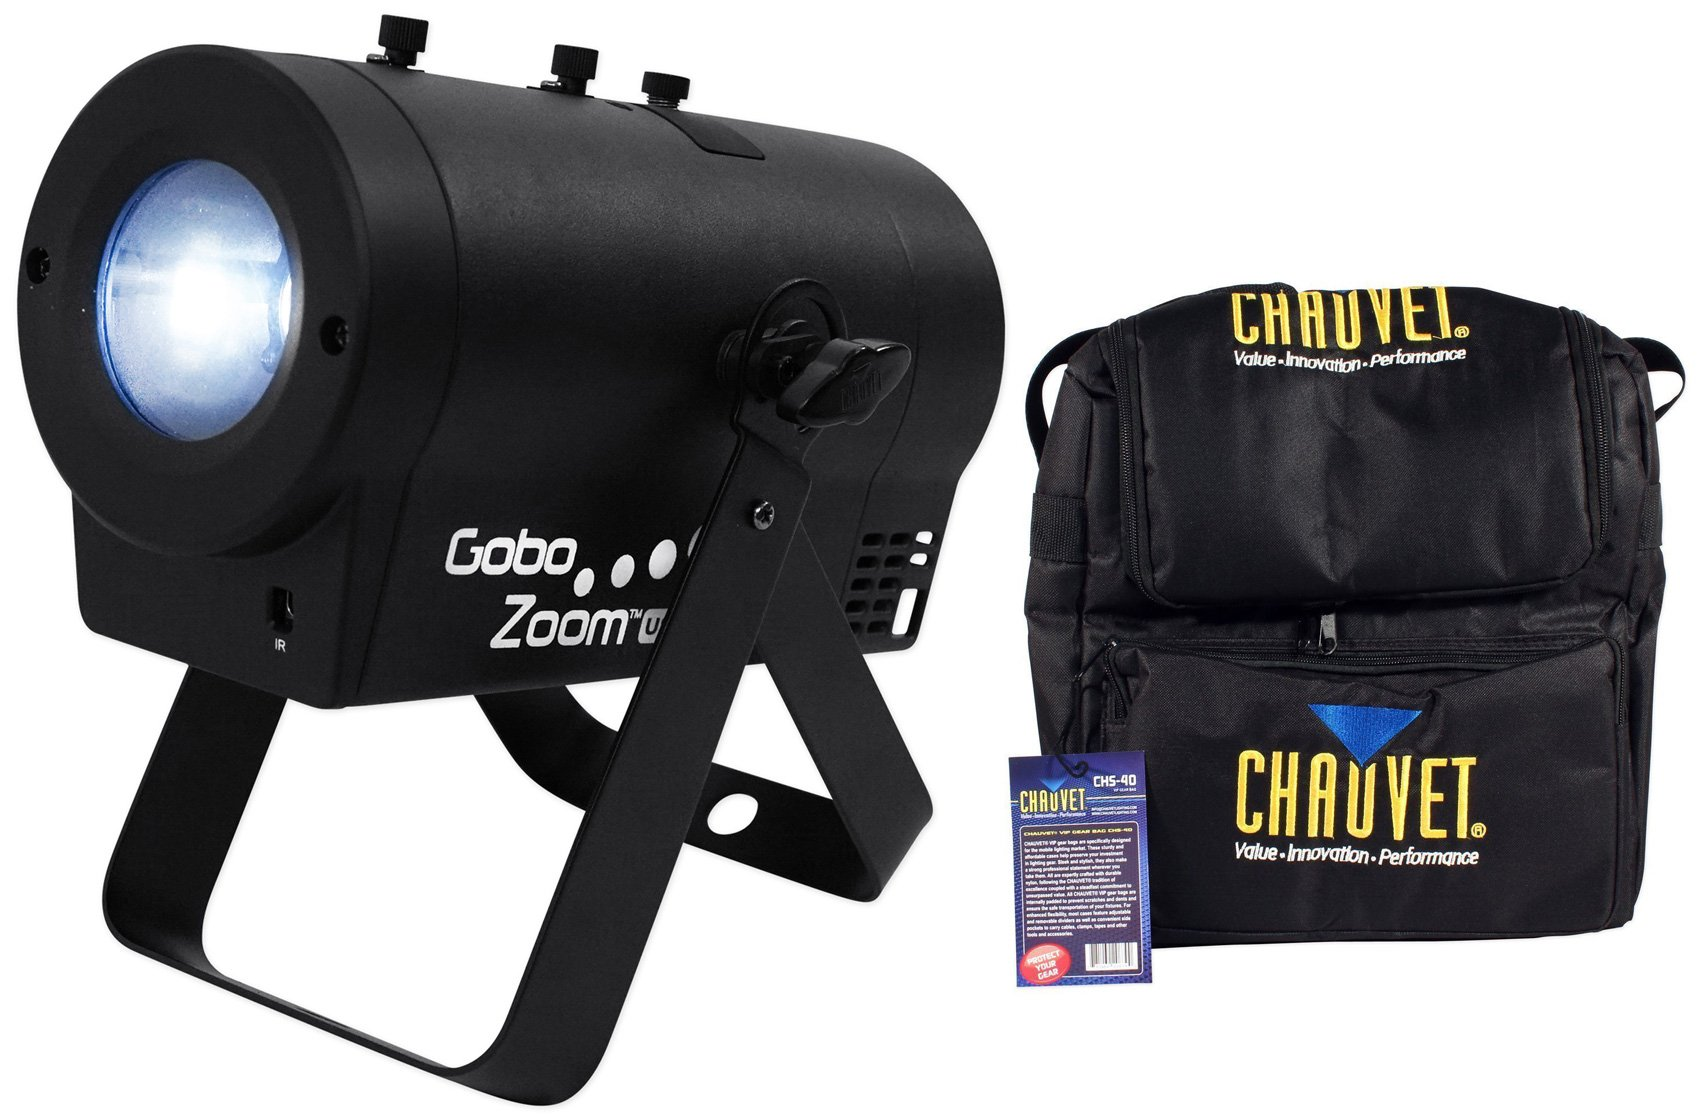 Package: Chauvet DJ Gobo Zoom USB Compact Custom Gobo Projector Light With 10 Wedding Ready Gobos + D-FI USB Ready + Chauvet DJ CHS-40 Rugged Travel Bag With Dual Compartments